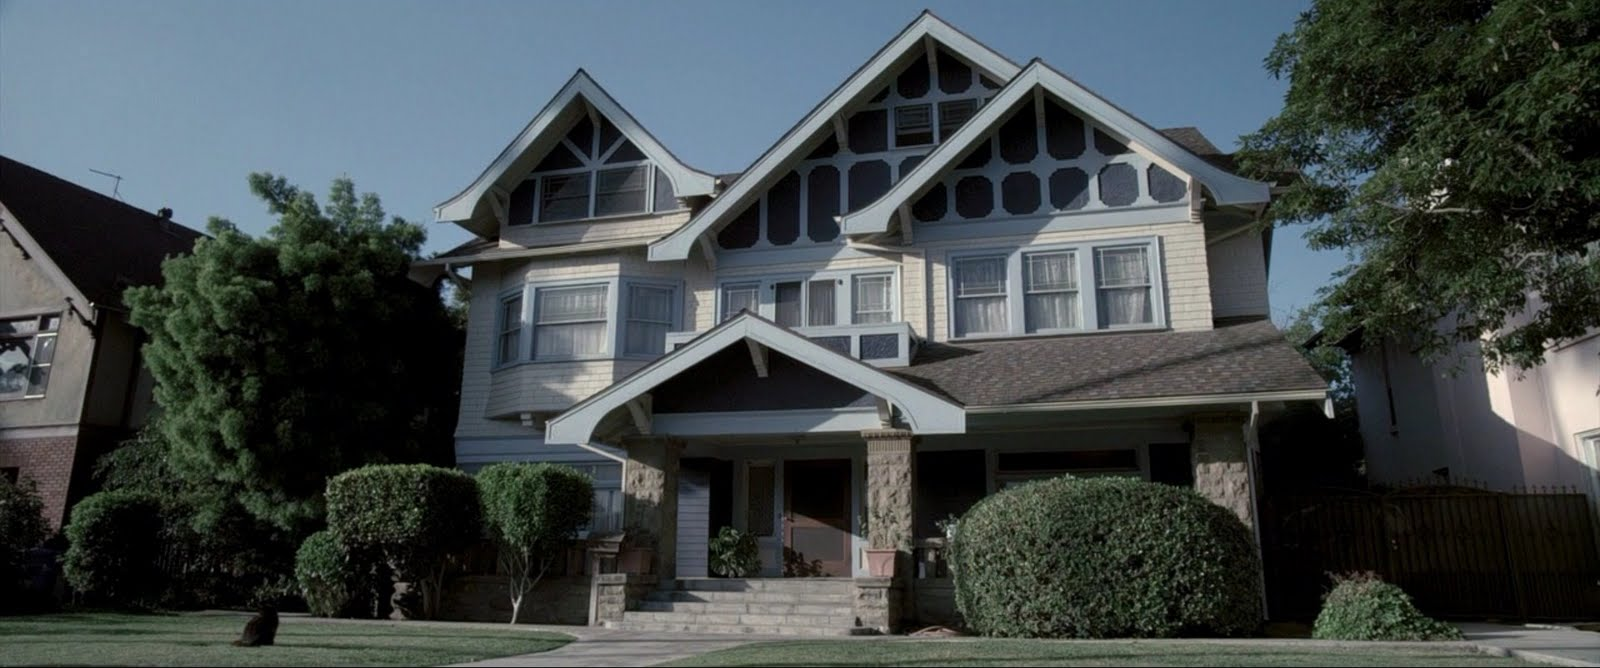 Set-Jetter & Movie Locations and More: Insidious (2010)